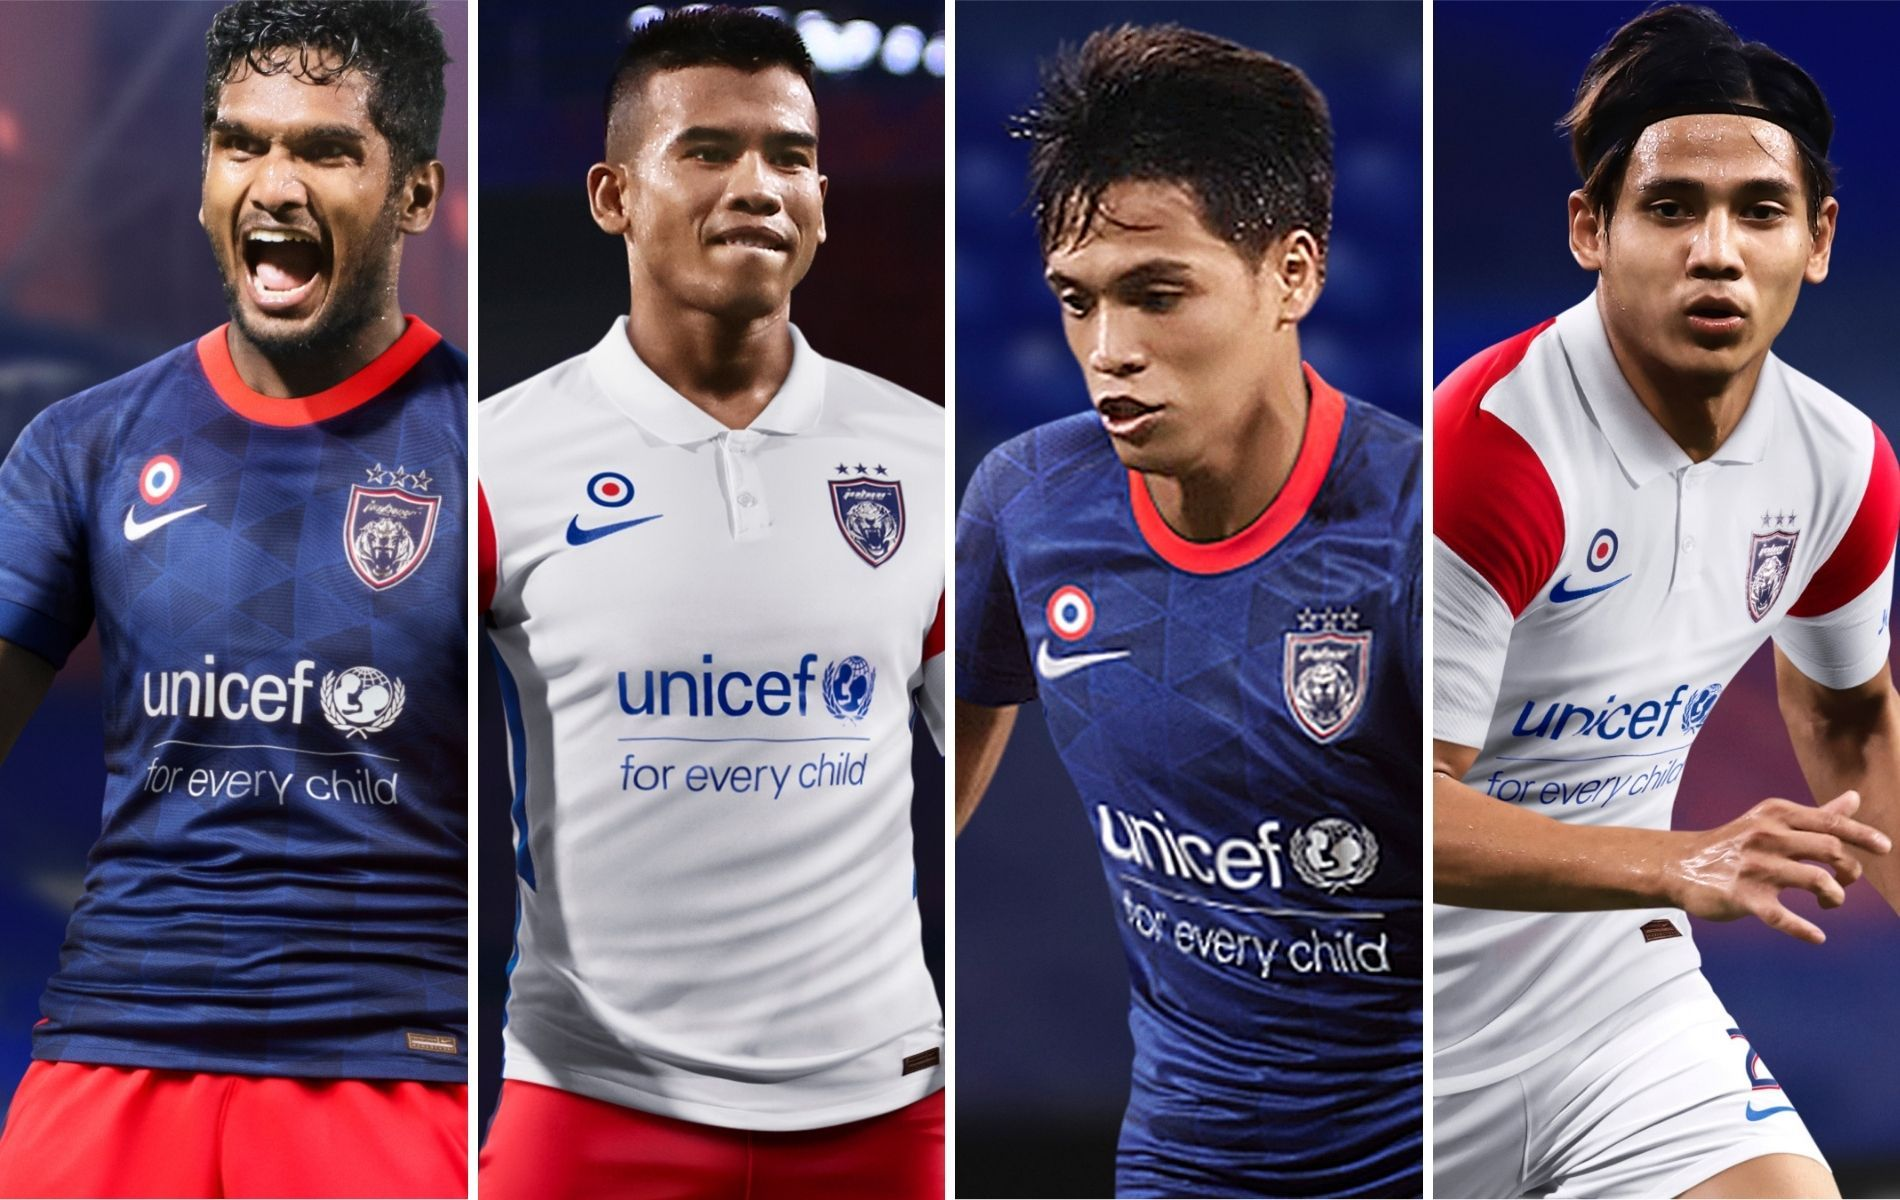 Nike Unveils New Johor Darul Ta'zim FC Football Team Kits